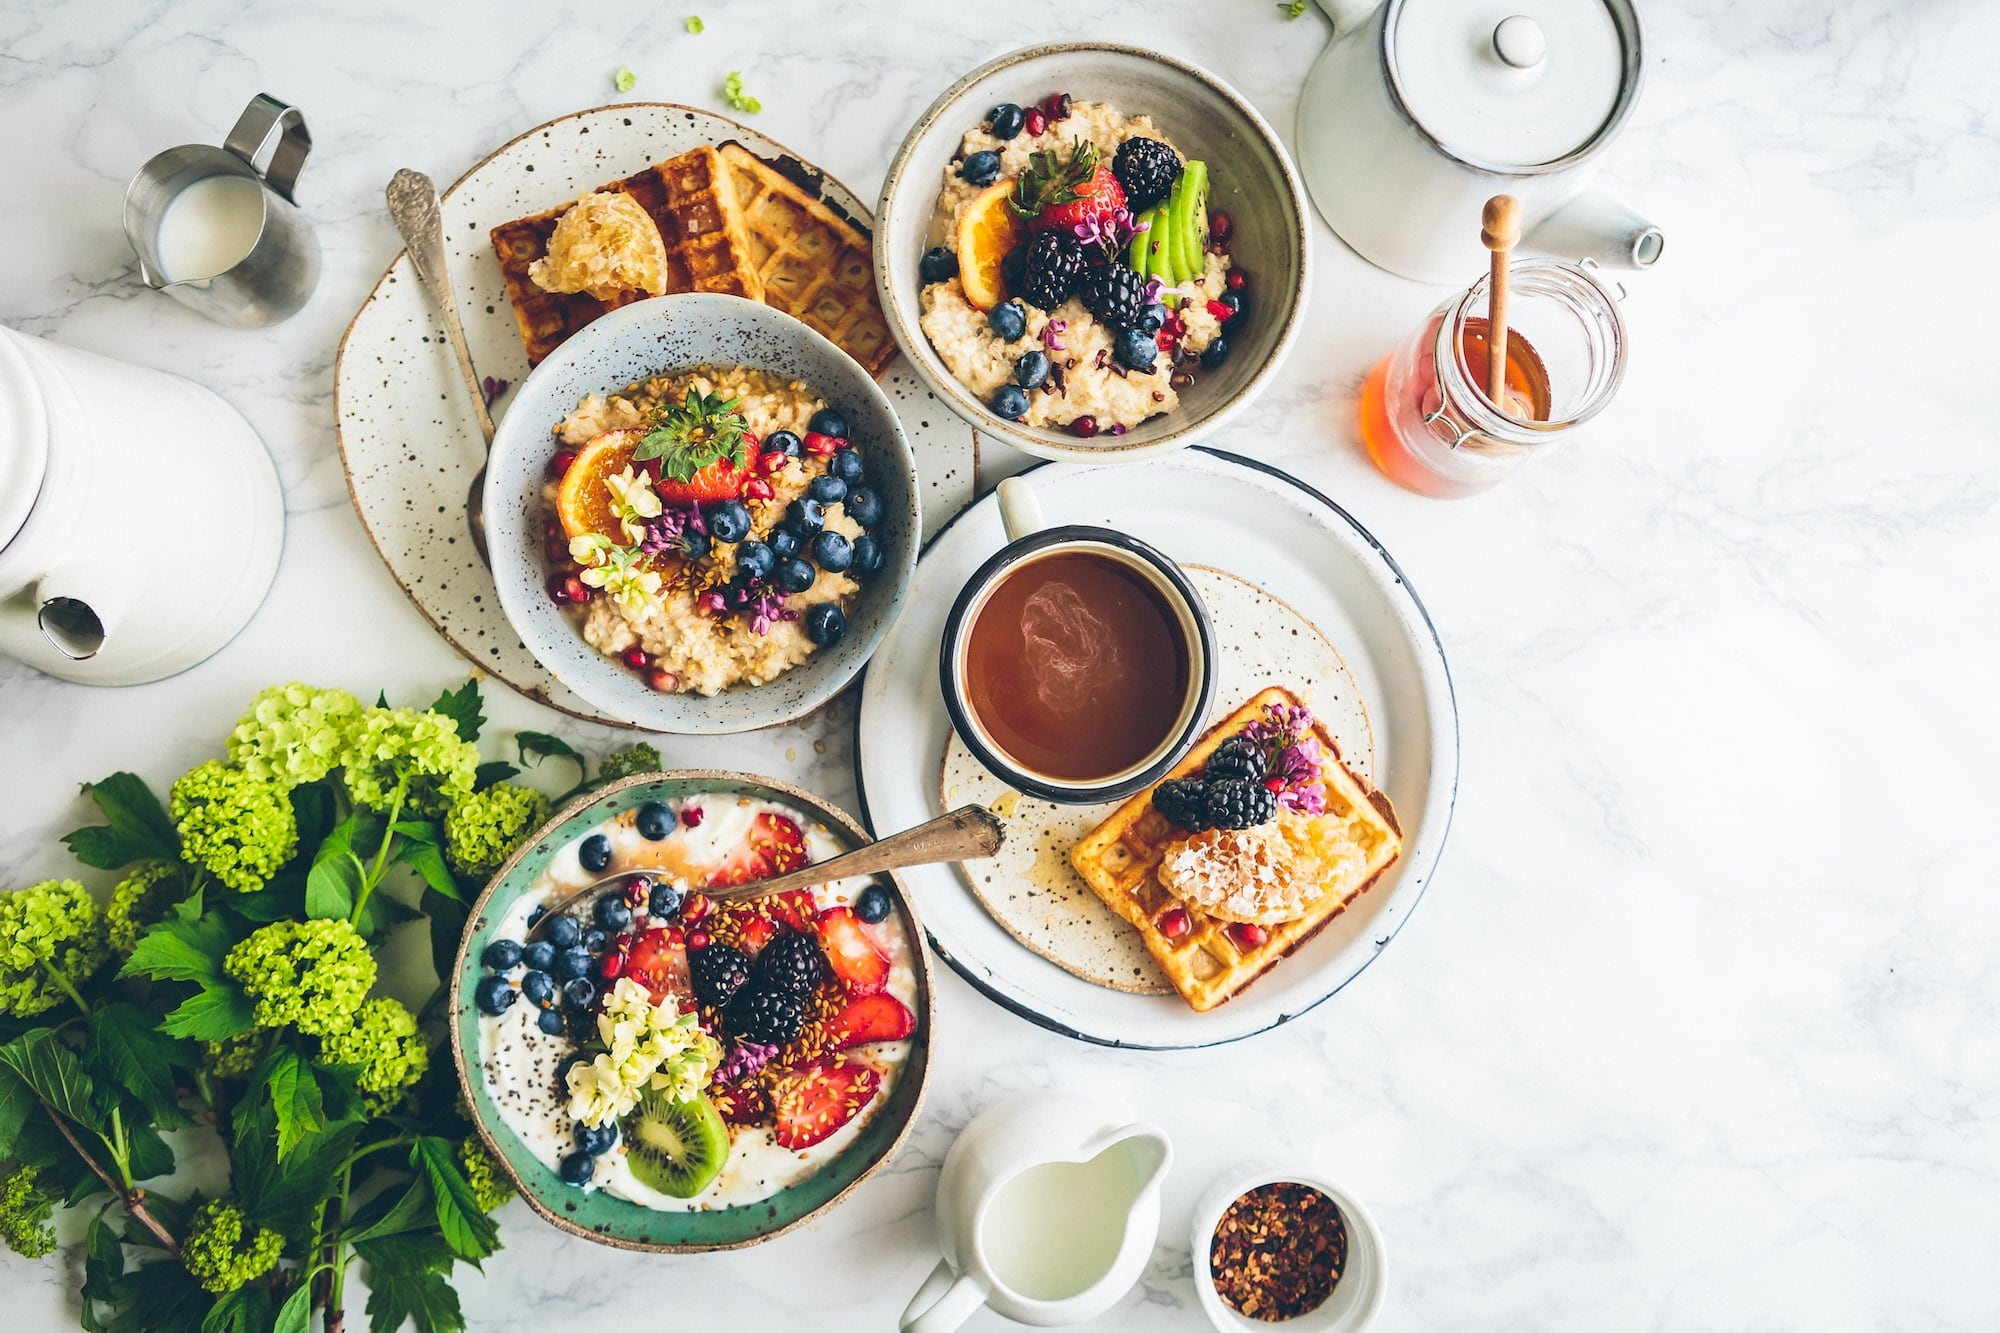 brunch places in hcmc feature